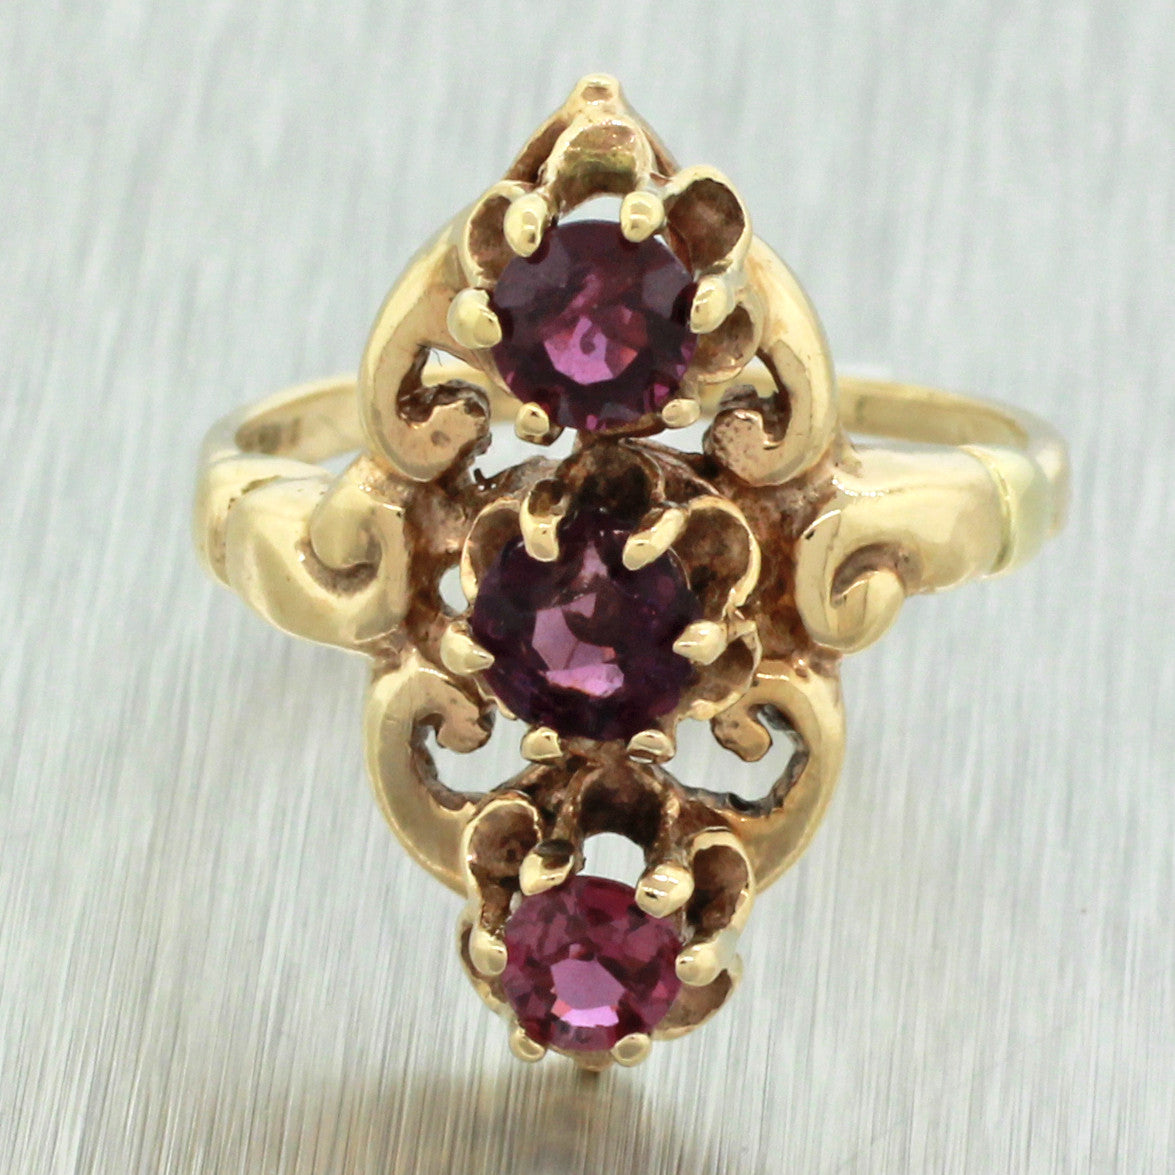 1960s Vintage Estate Women's 10k Yellow Gold Amethyst Gemstone Filigree Cocktail